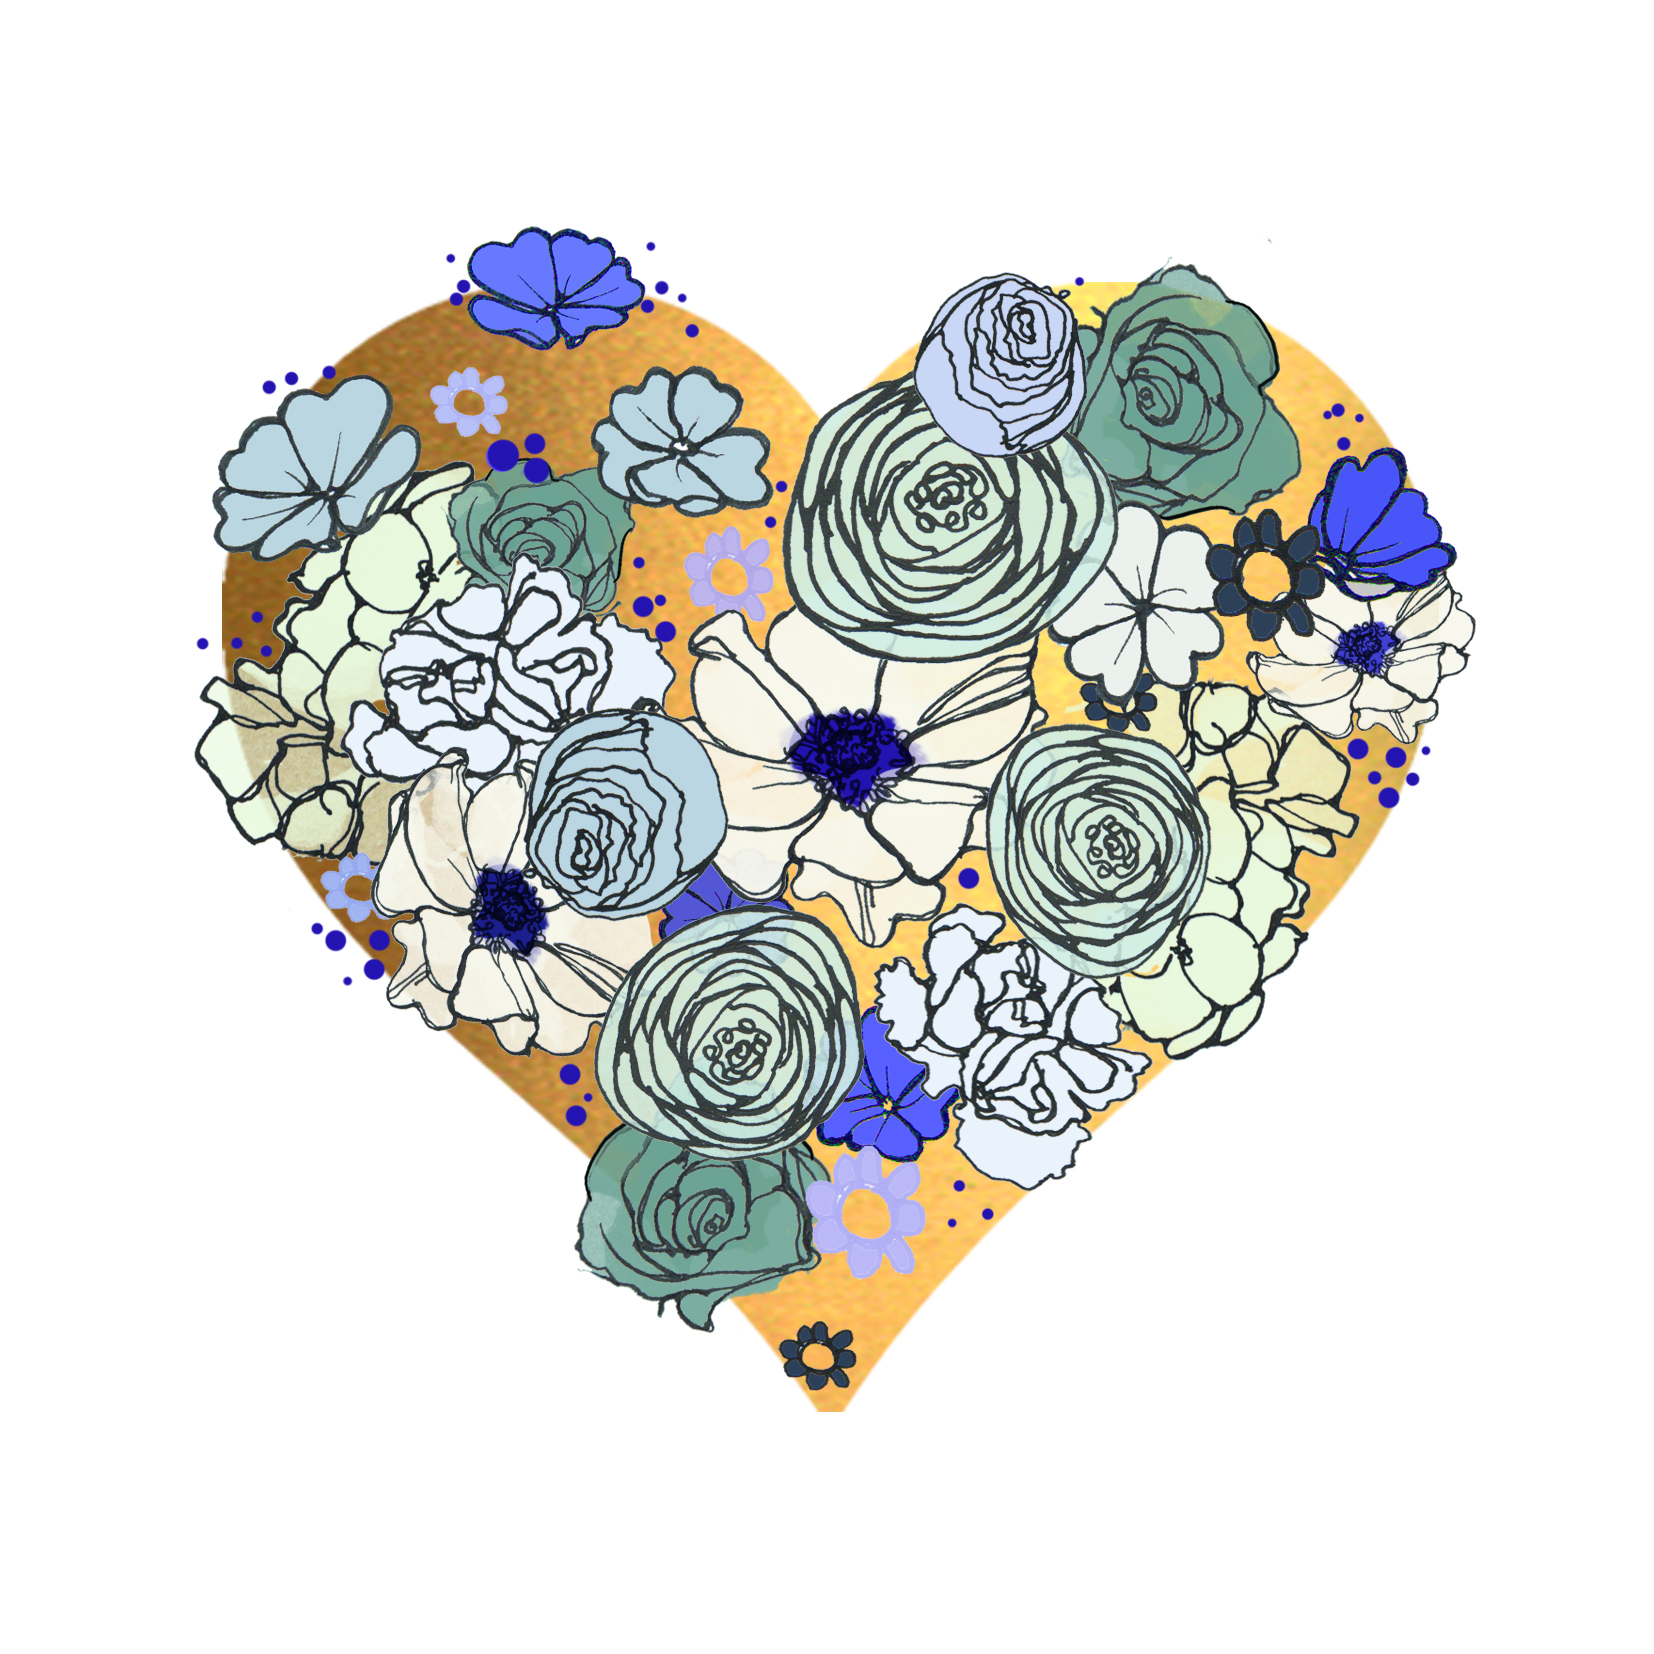 Bryony_Fripp_Illustrator_UKG CC heart WITH LOVE.jpg